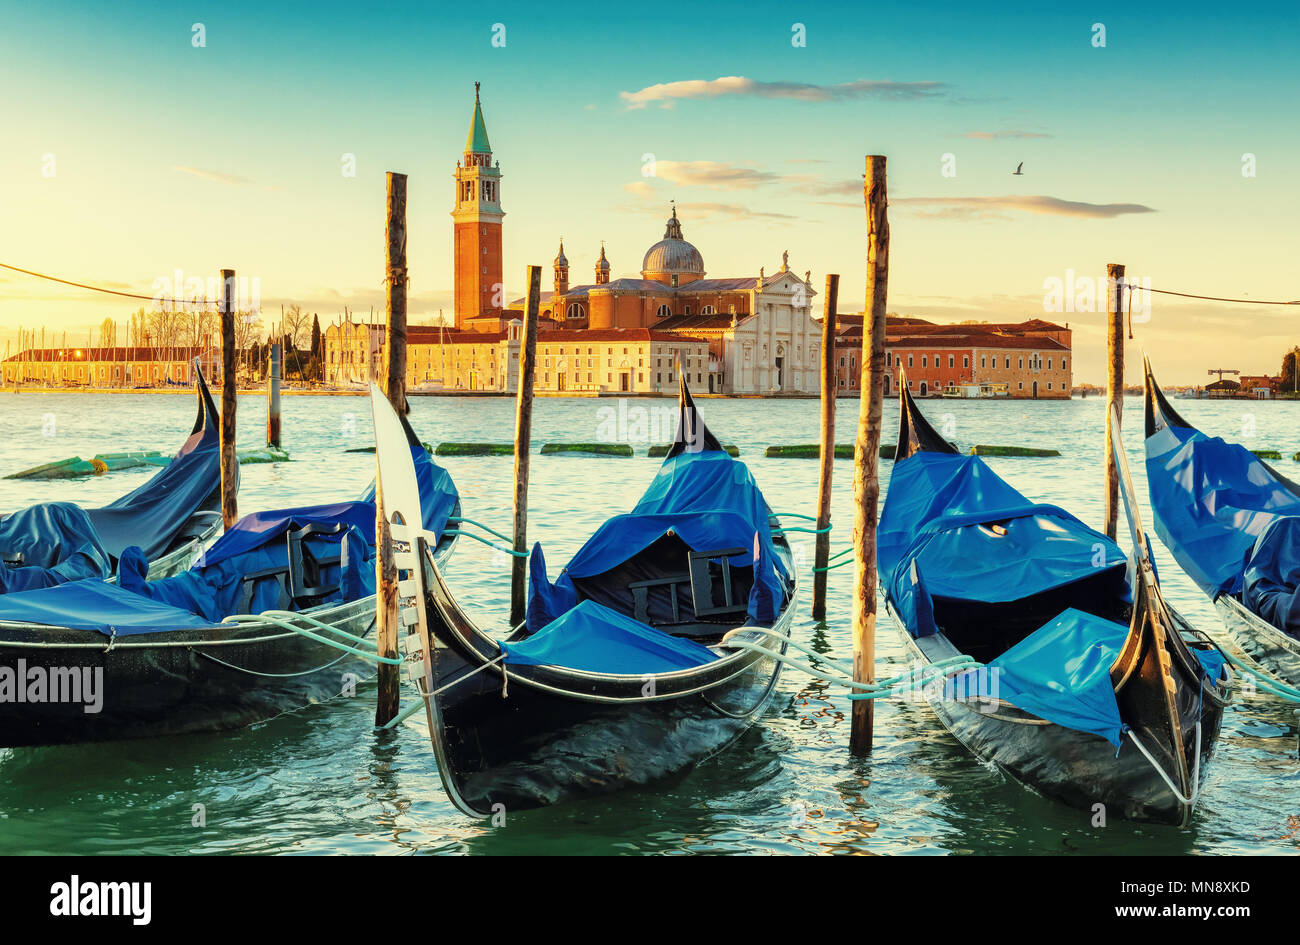 Venice gondolas near San Marco square at sunrise, Grand Canal, Venice, Italy. Vintage post processed. Stock Photo